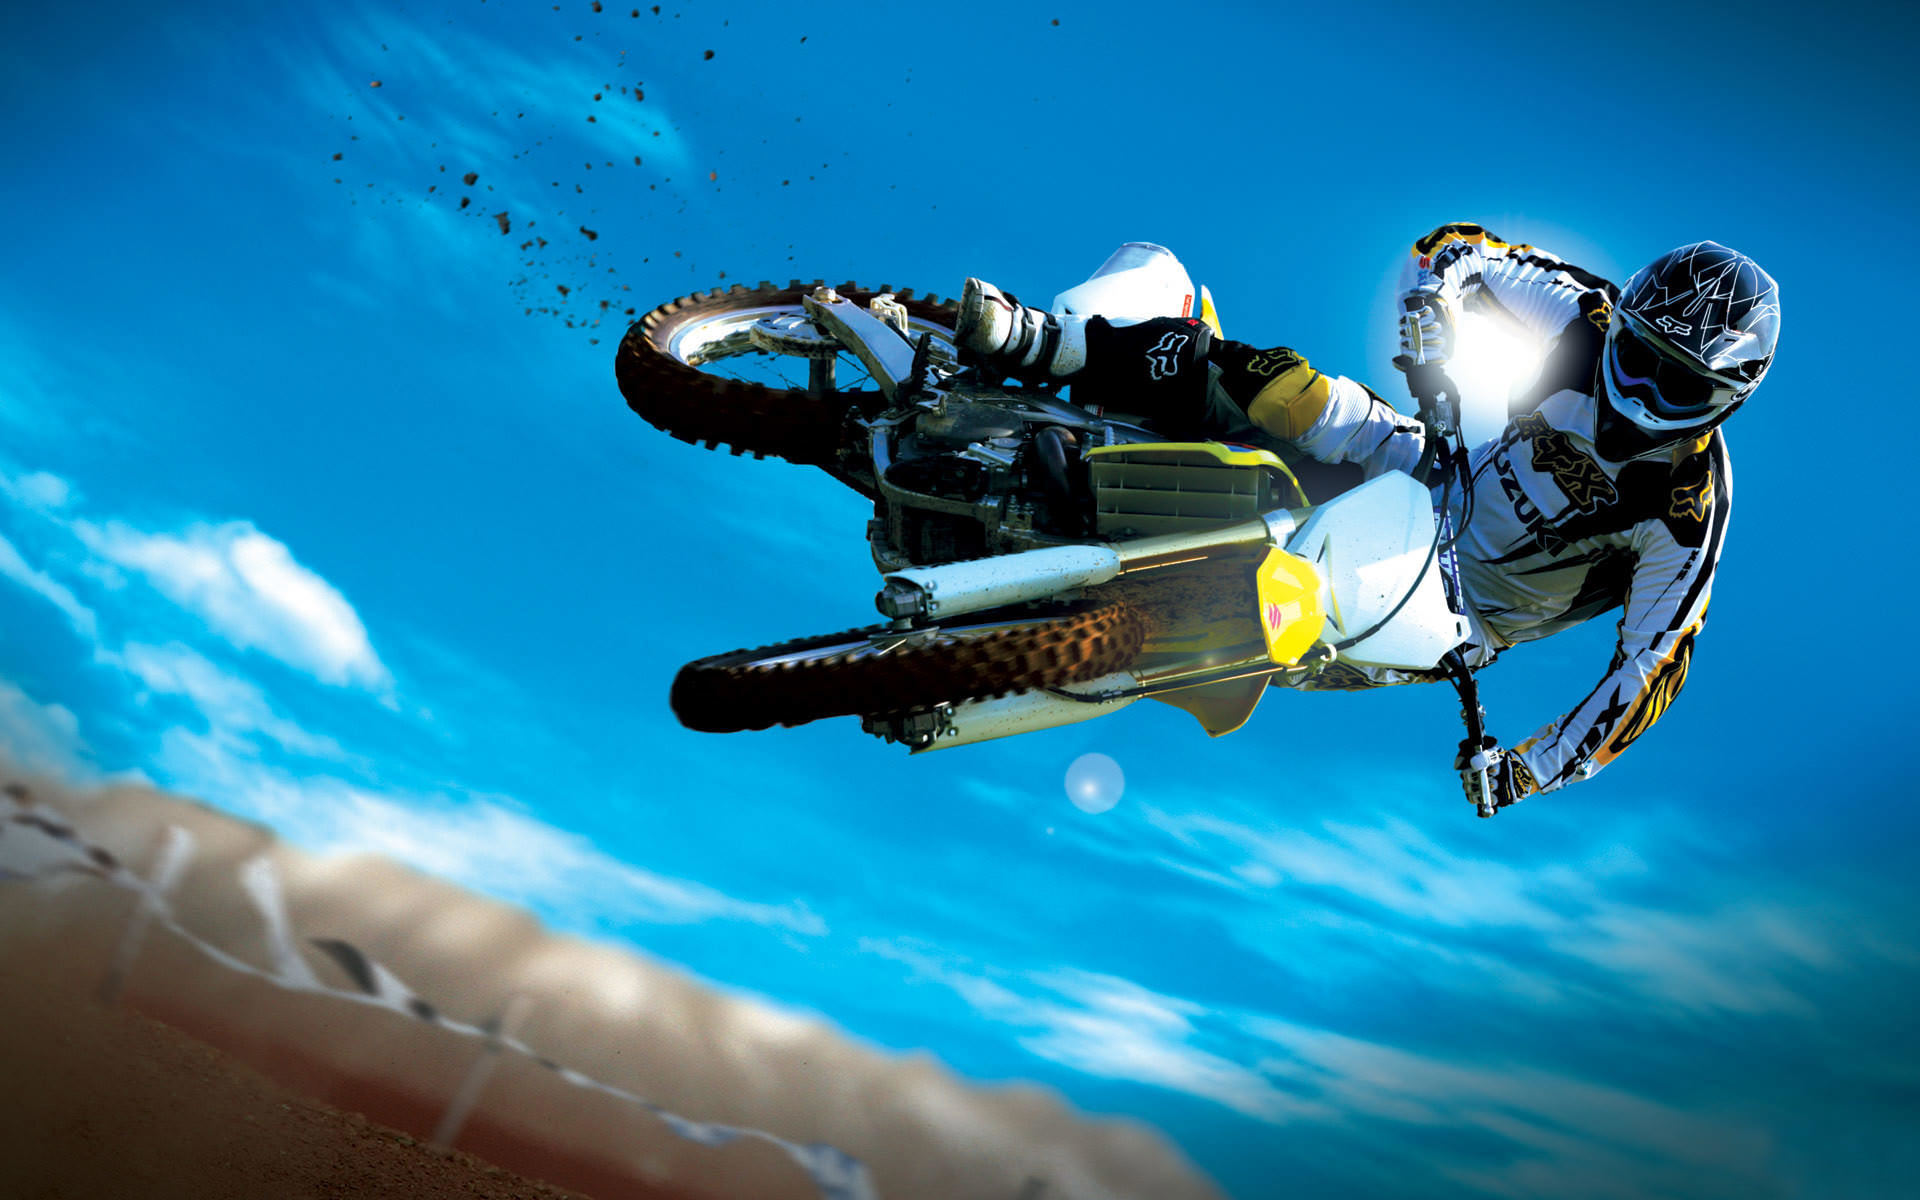 Extreme Sport Wallpaper 1920x1200.